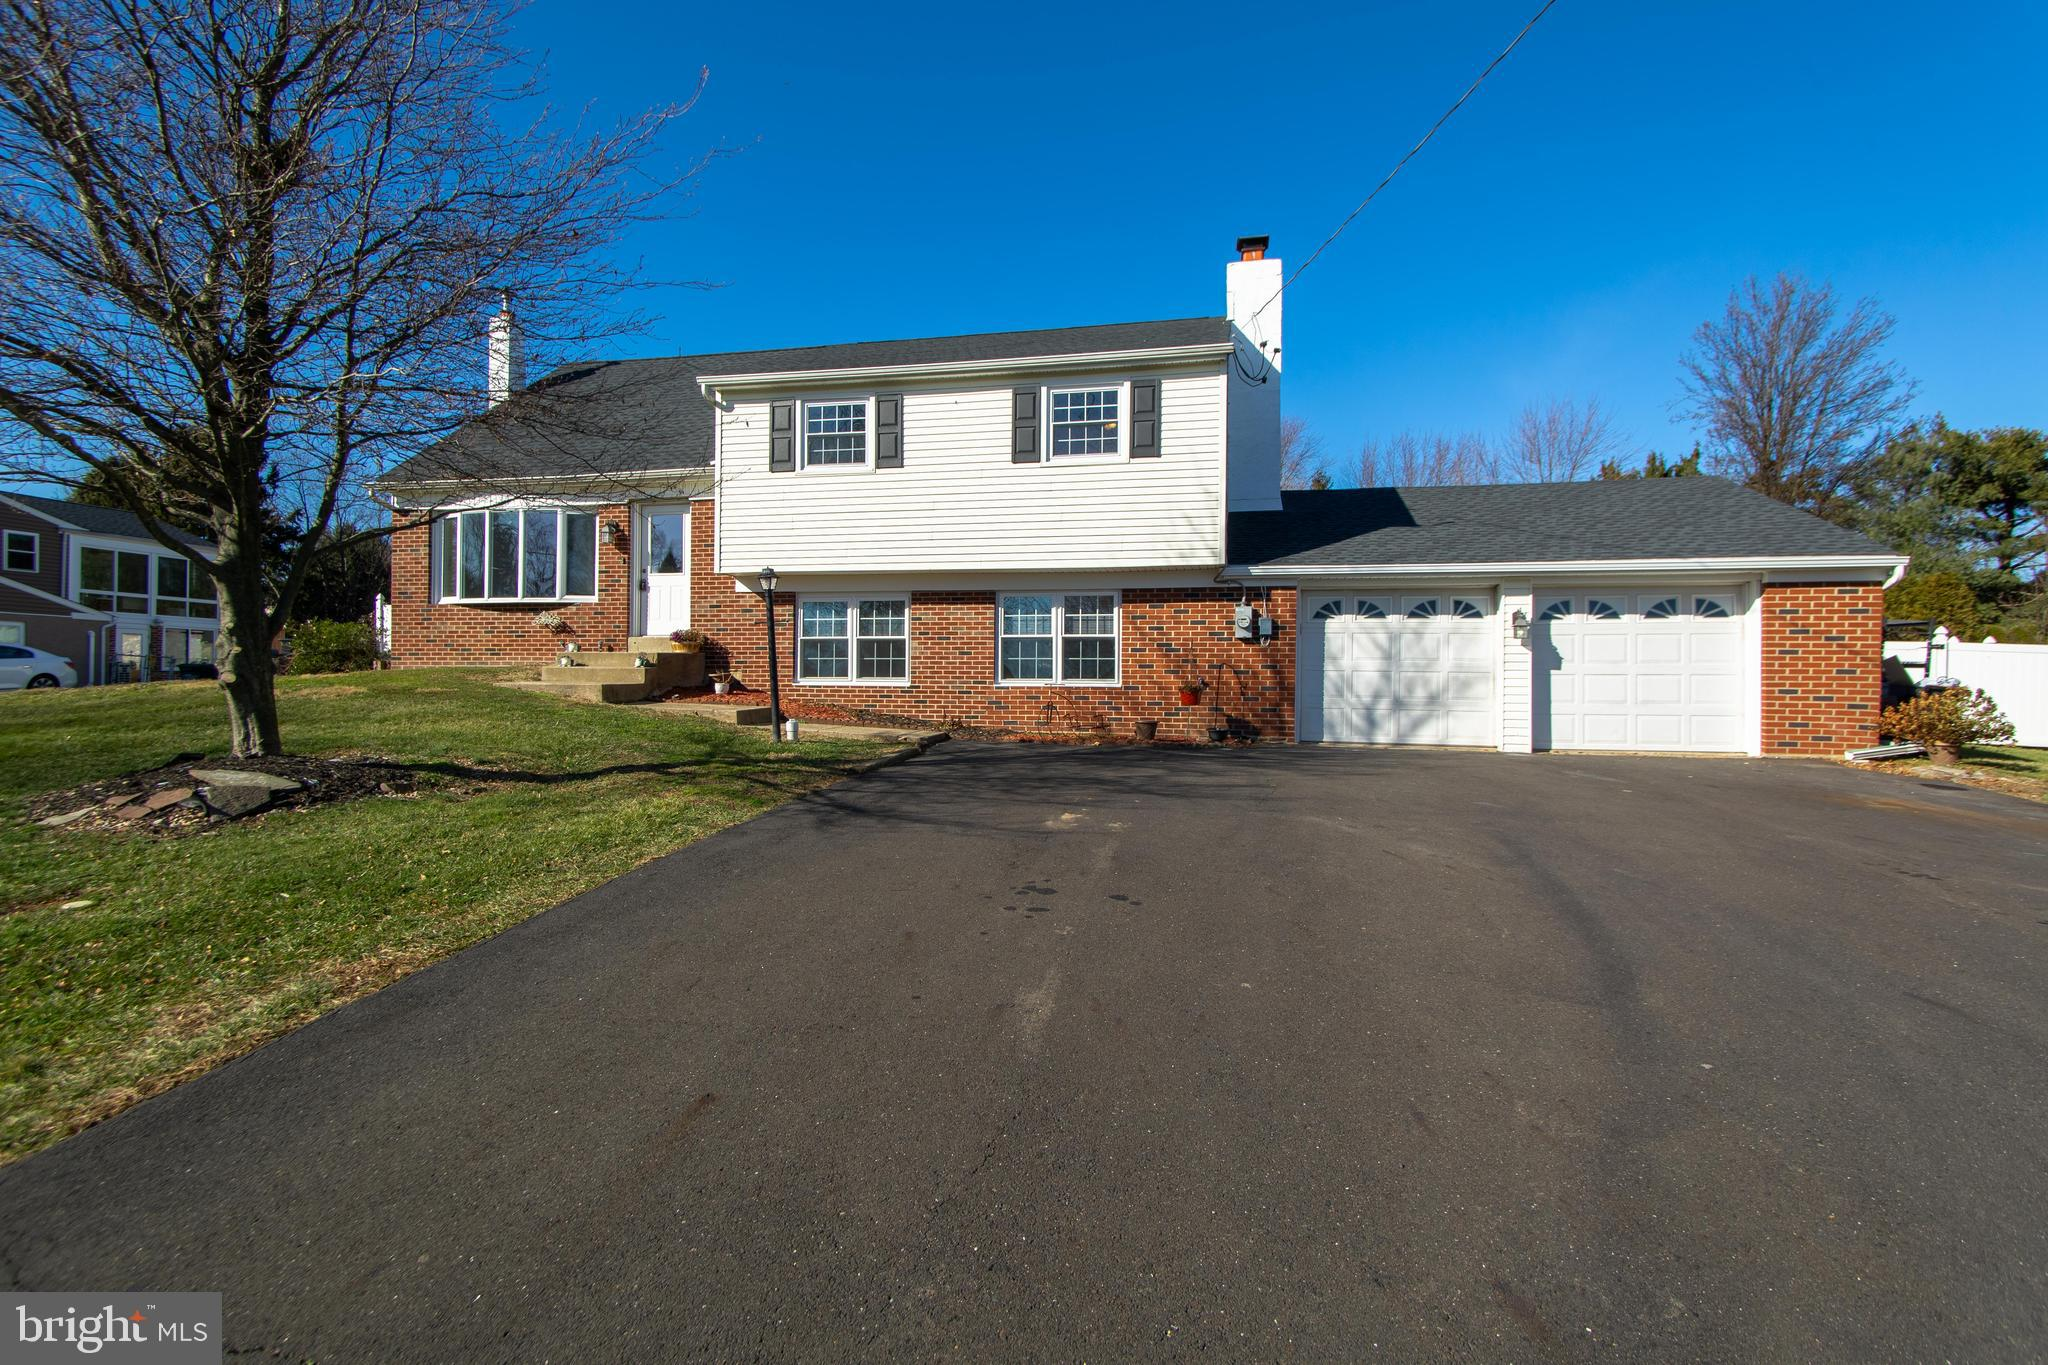 445 TWINING FORD ROAD, RICHBORO, PA 18954